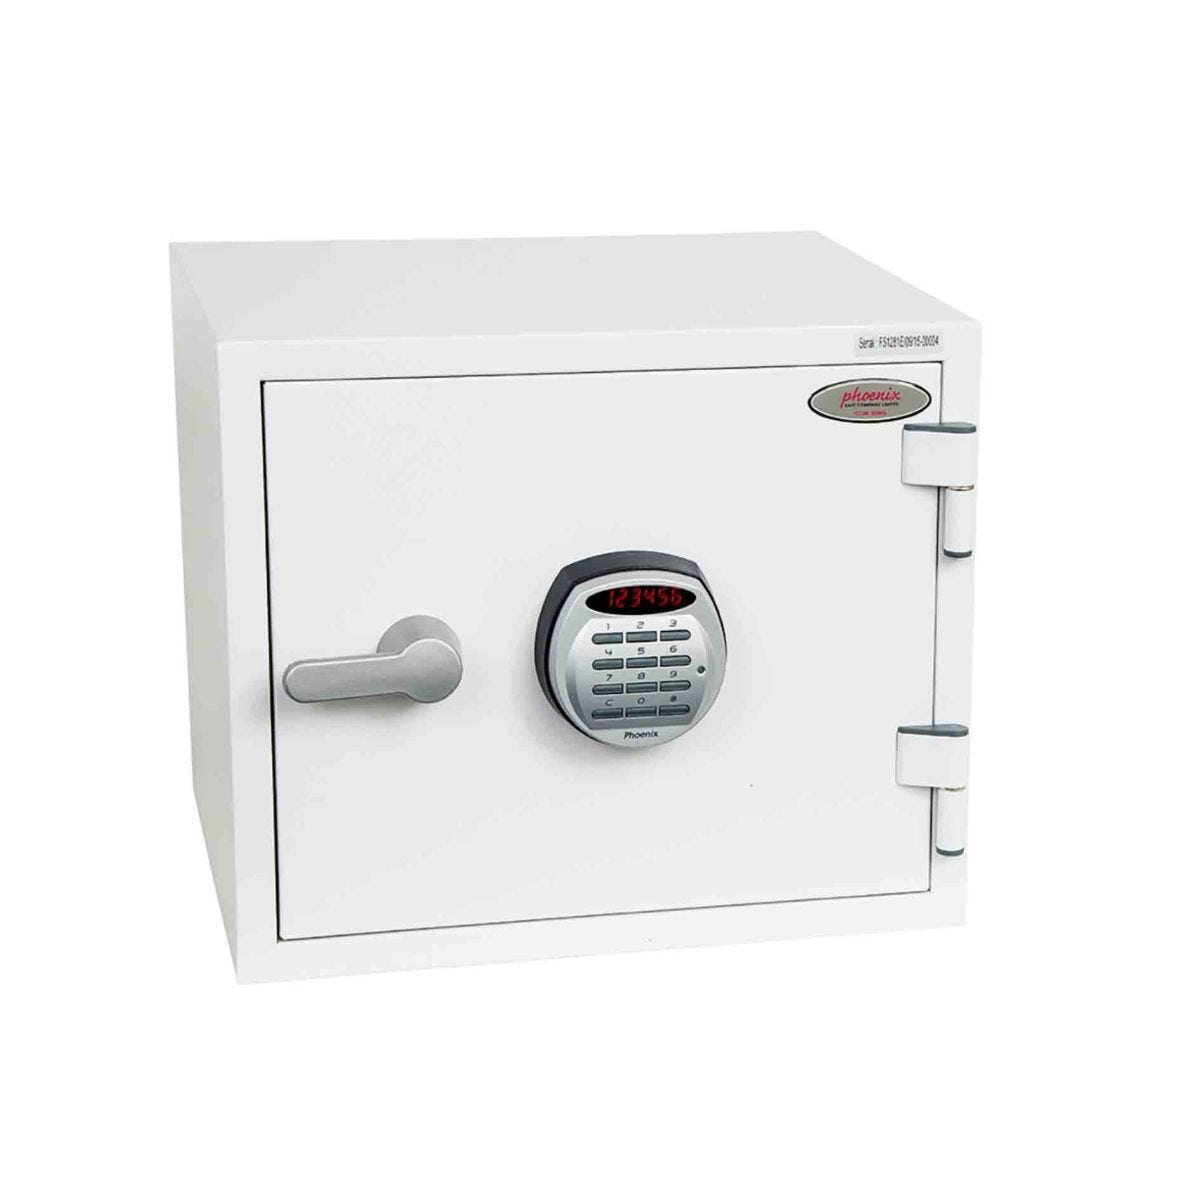 Phoenix Titan Fire and Security Safe with Electronic Lock Size 1